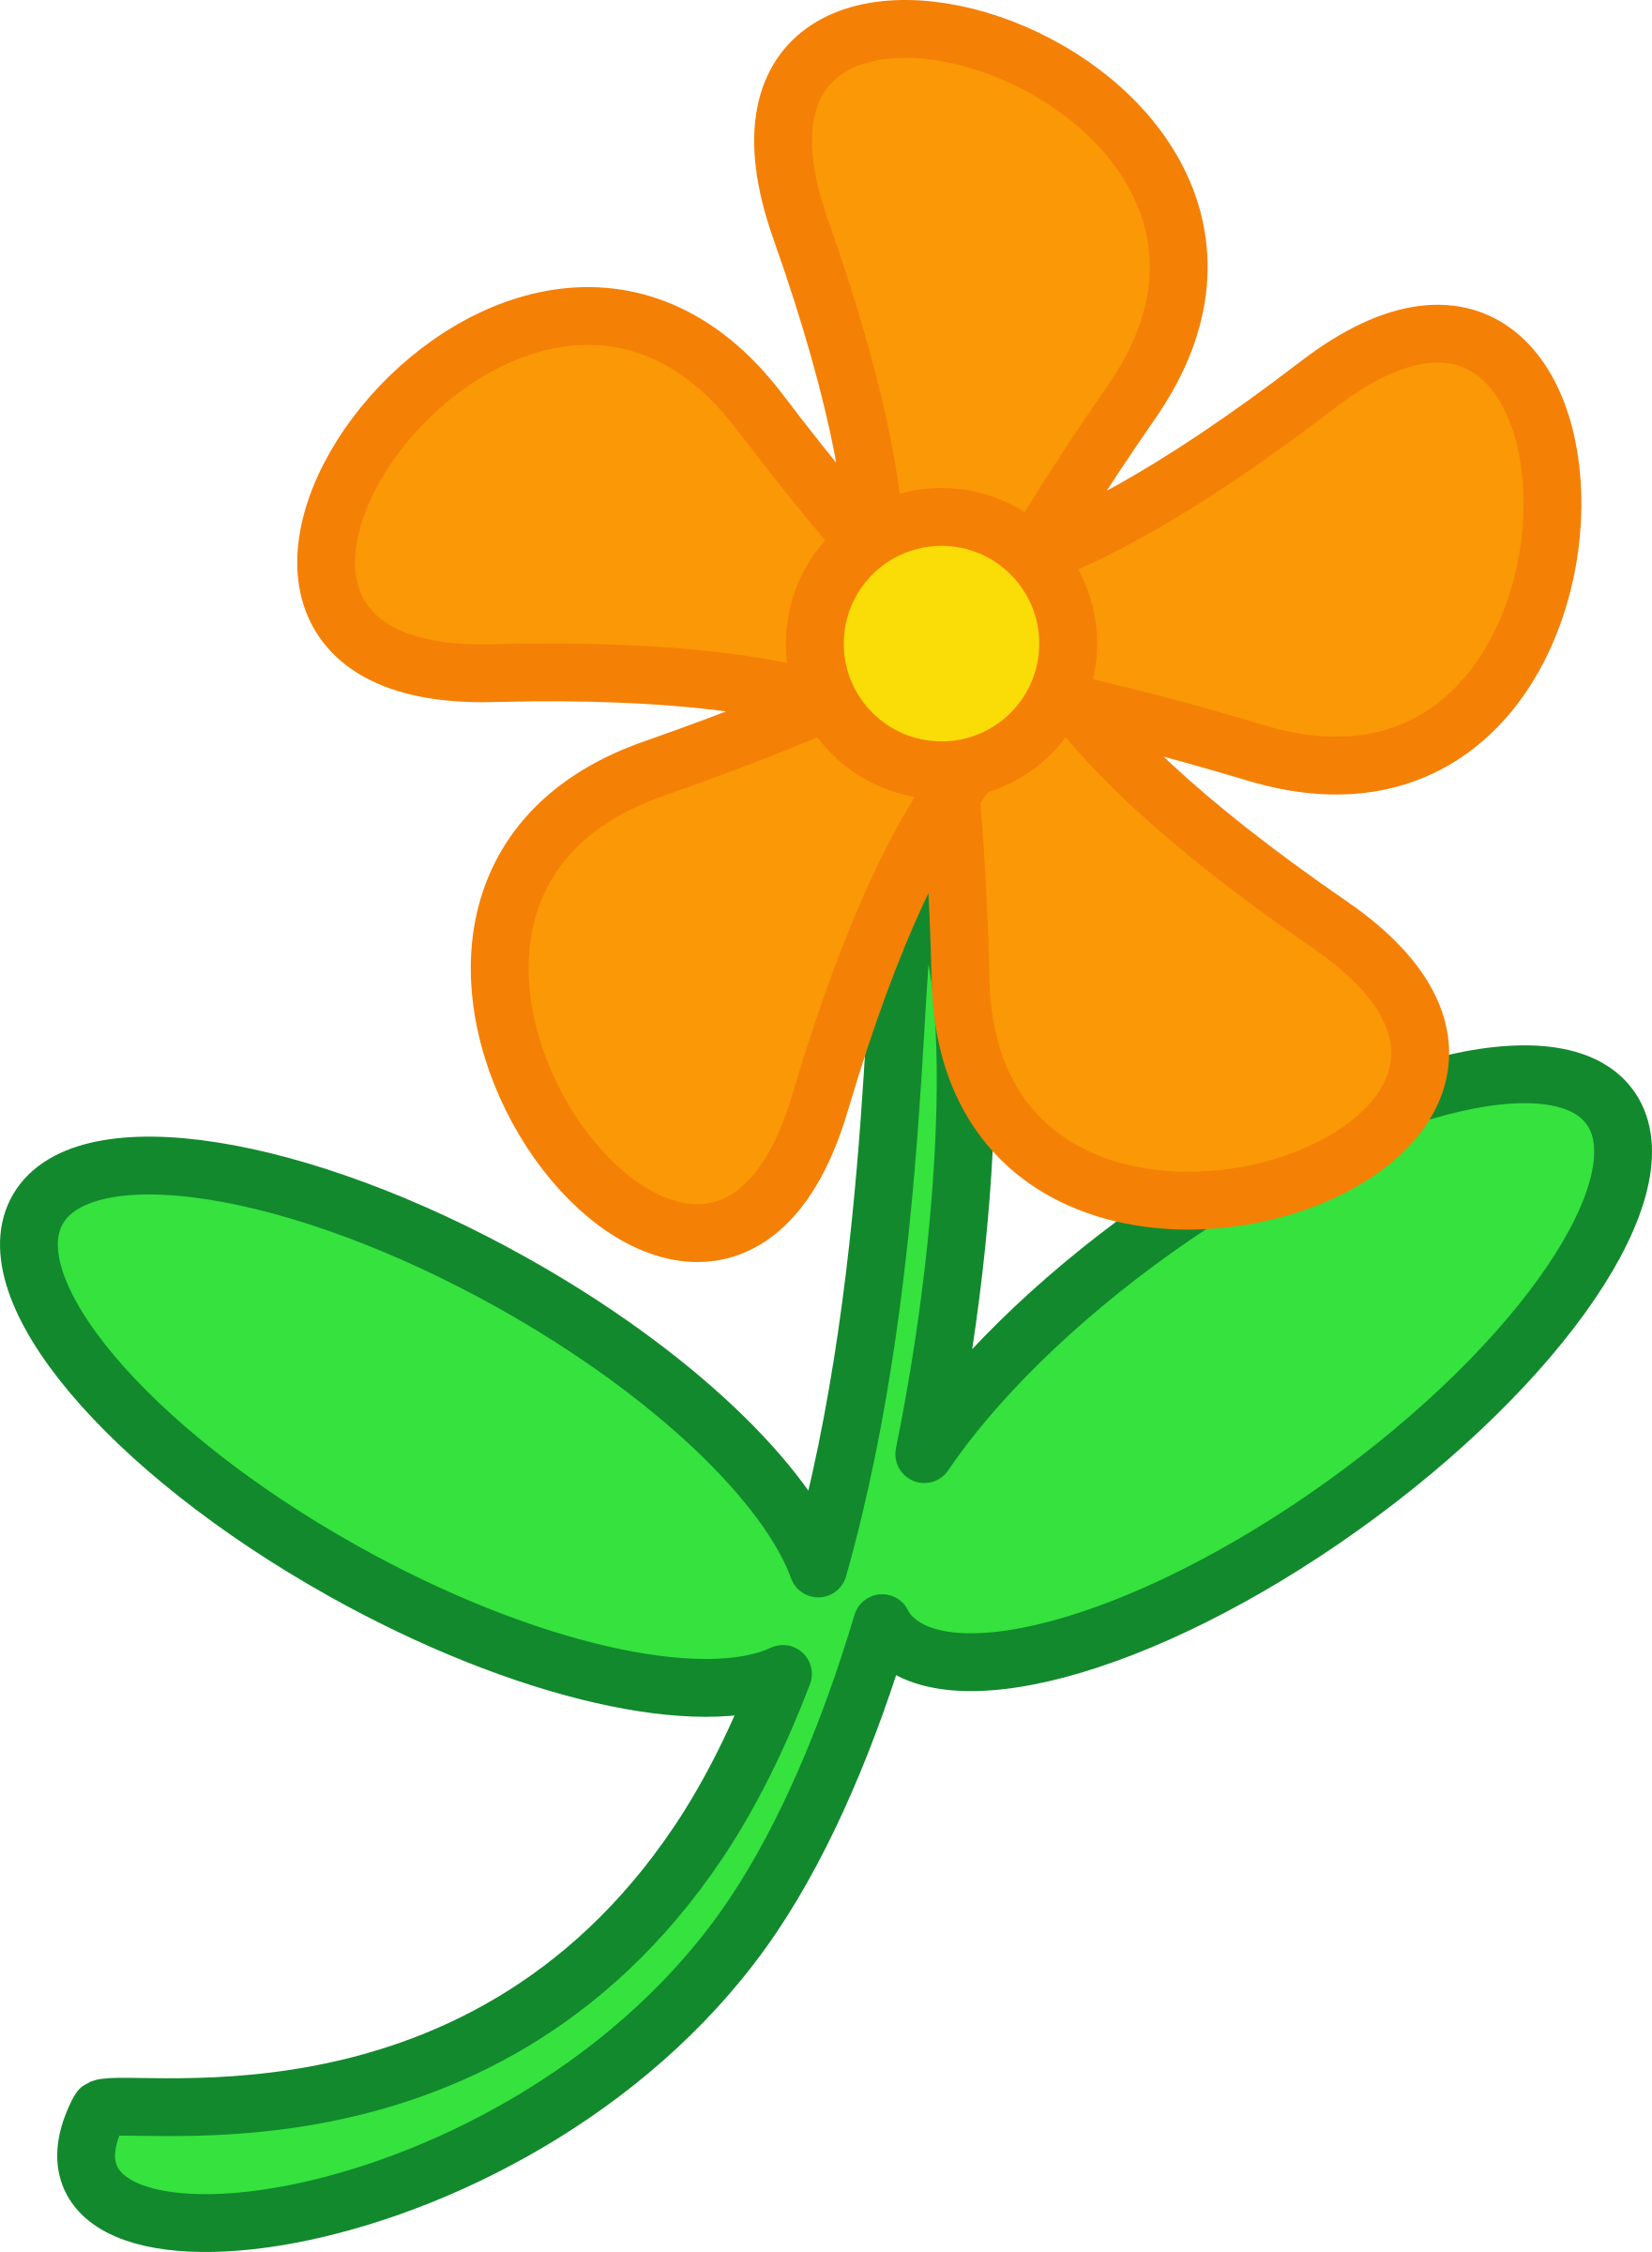 Flower animation clipart. Big image png